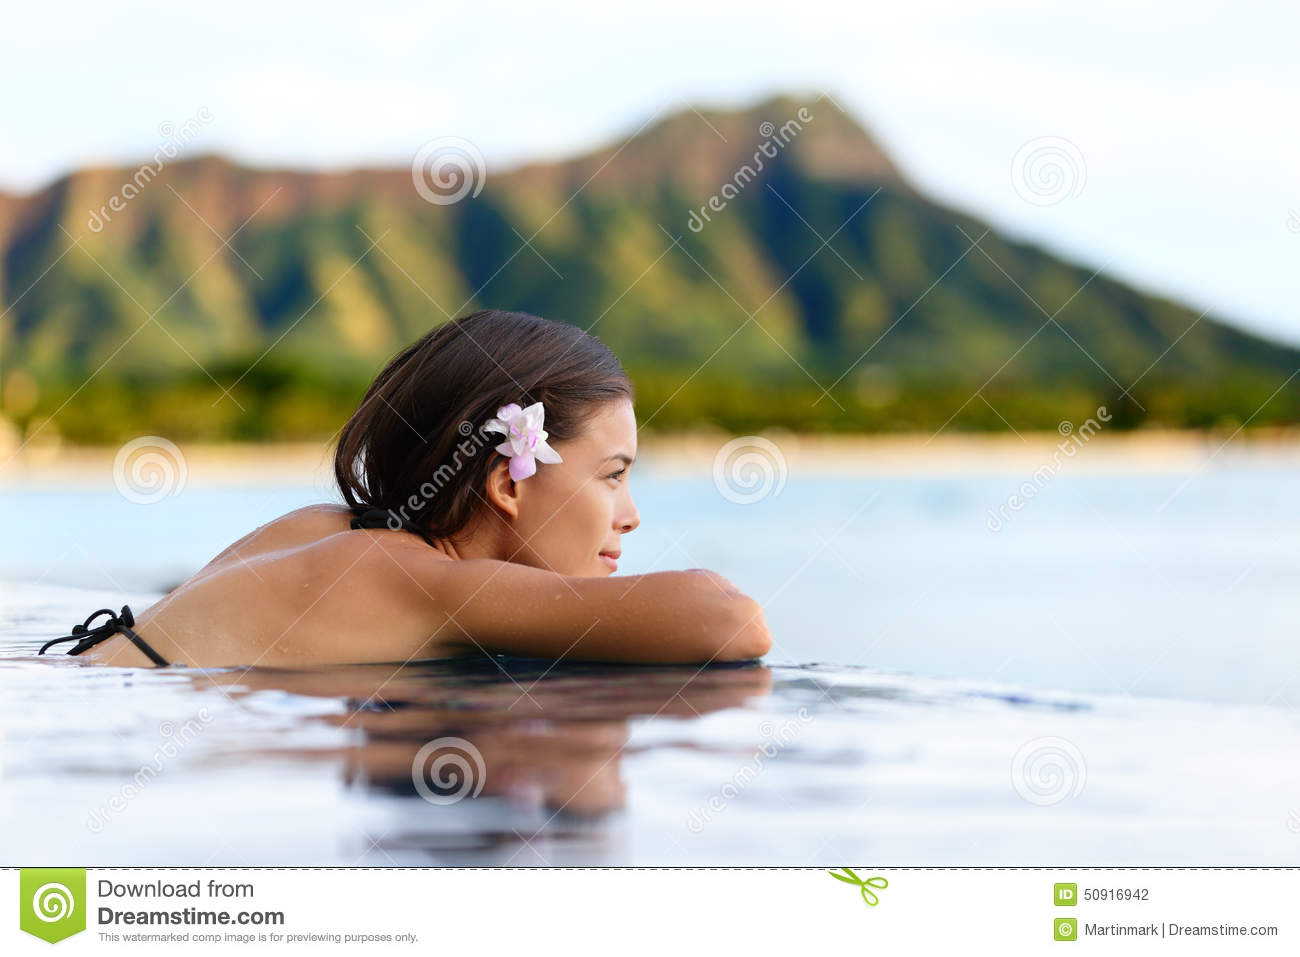 Download Infinity Pool Resort Woman Relaxing At Beach Stock Photo - Image of ocean, holidays: 50916942